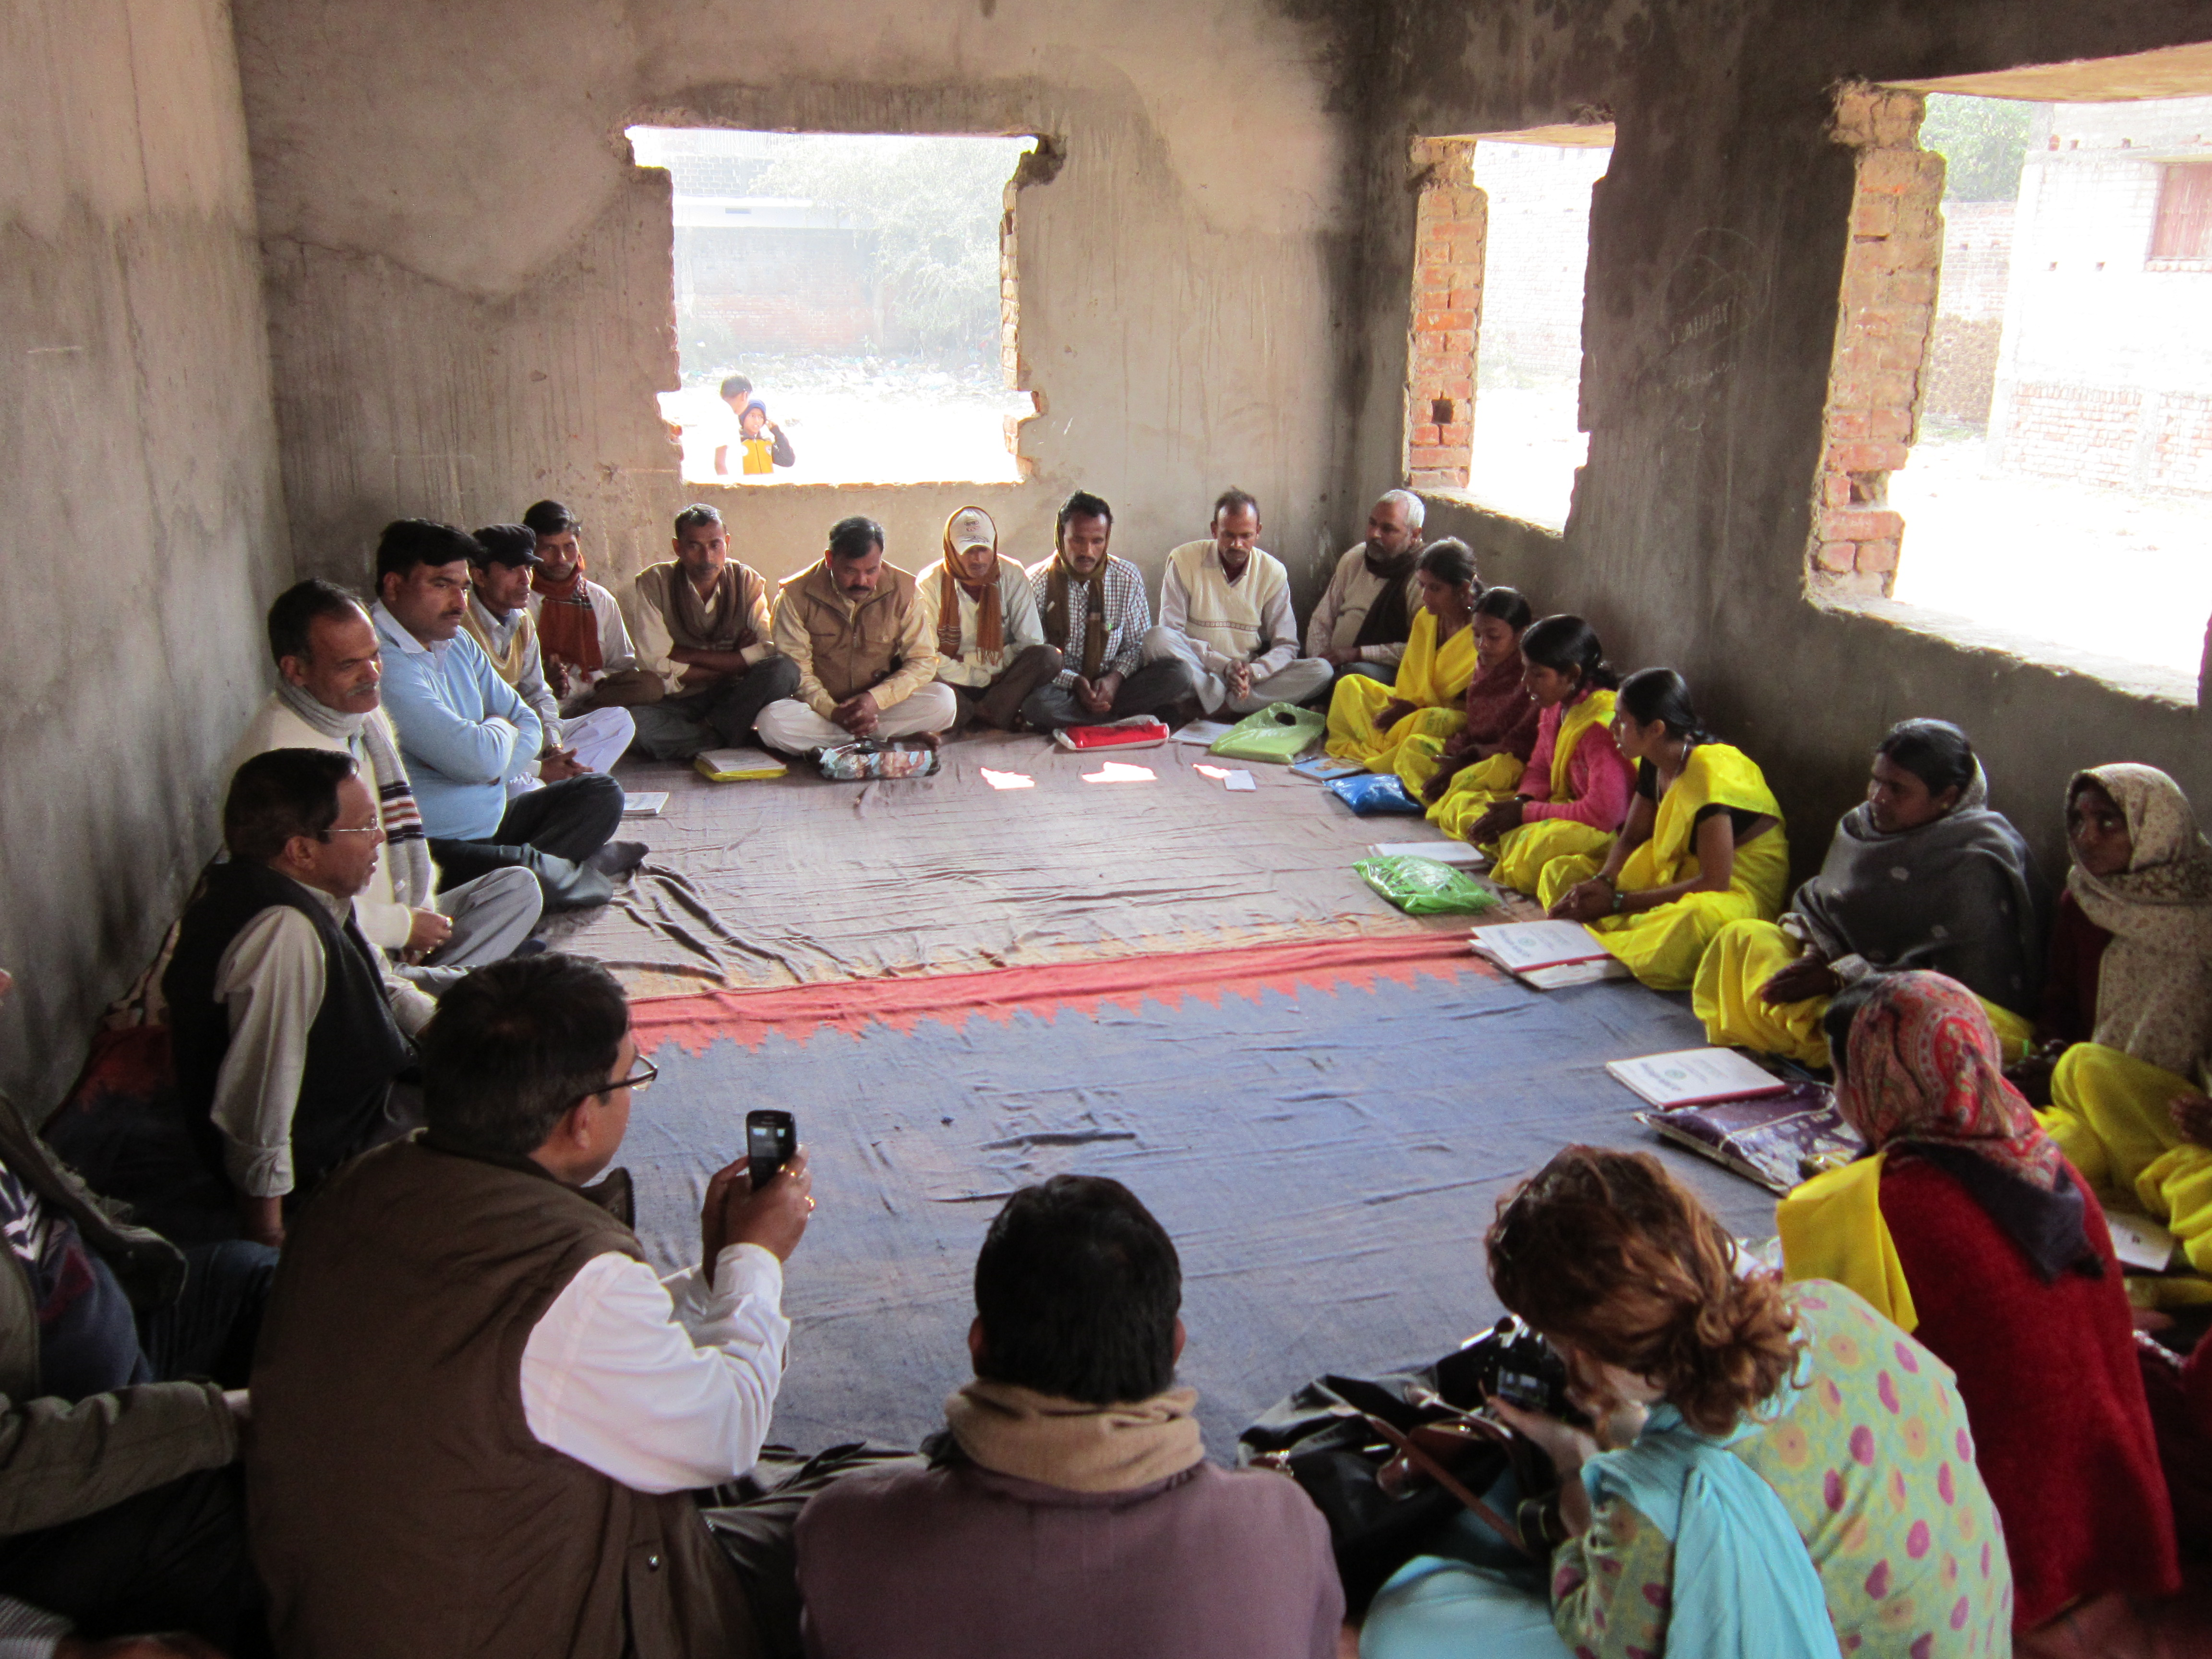 A farmer meeting in Collaboration with an NGO -a village in Bihar